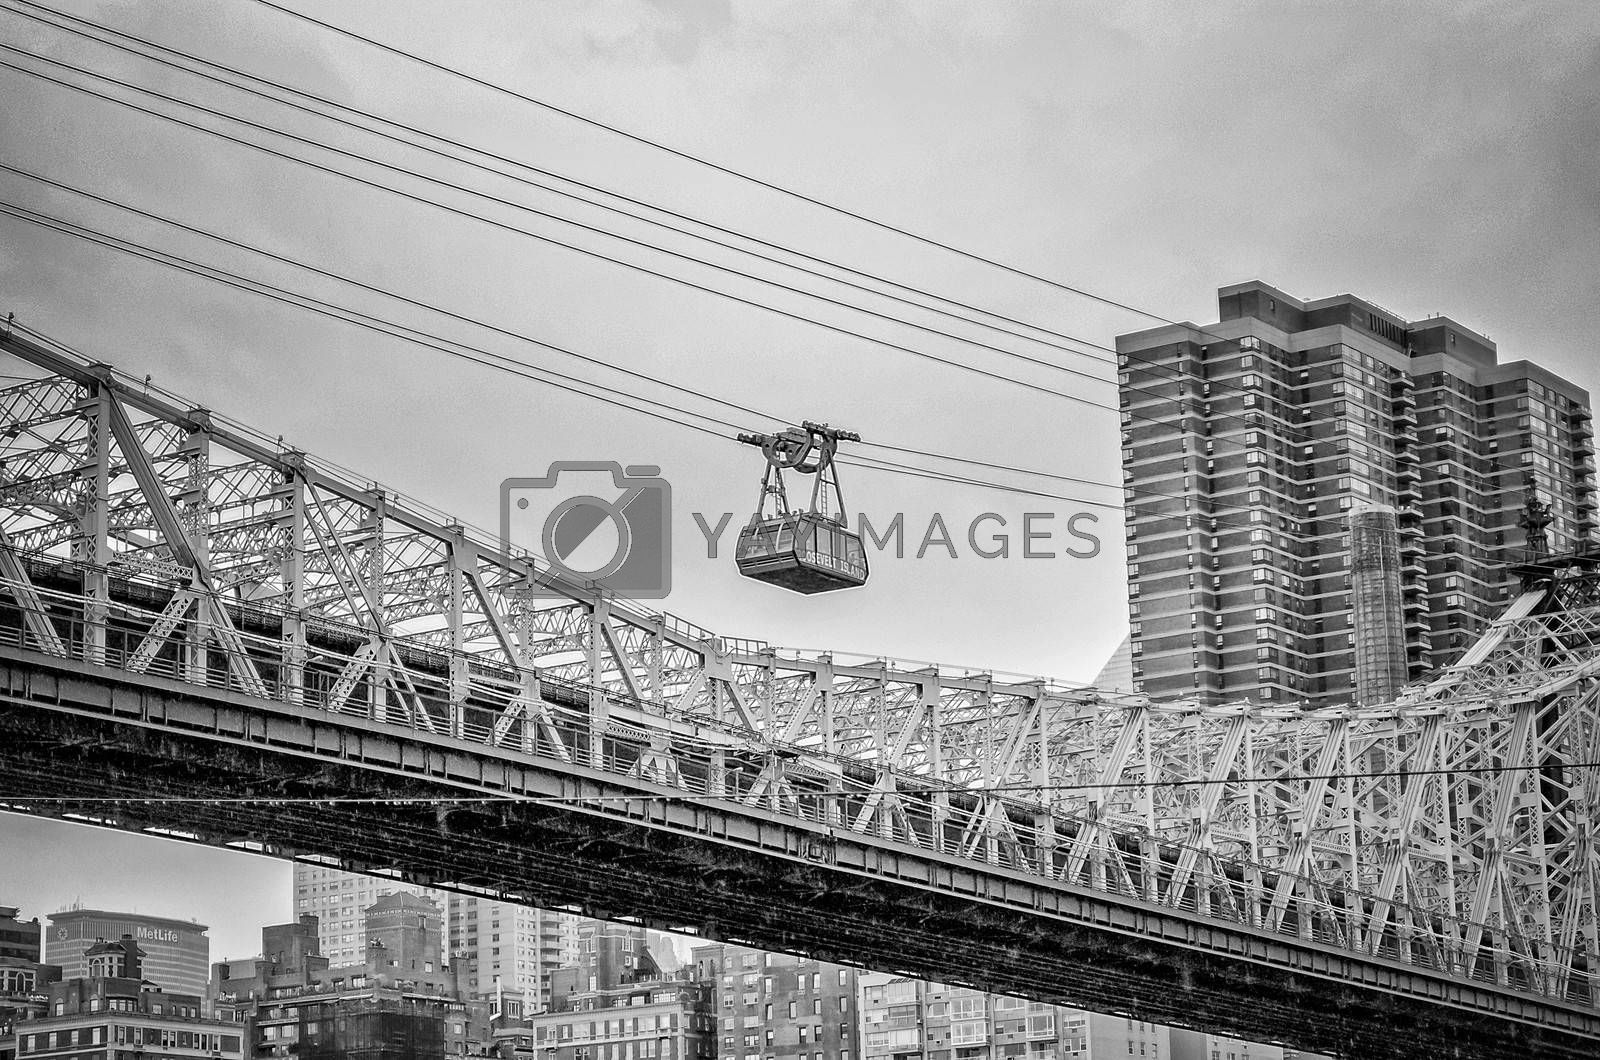 NEW YORK - MAY 28: The famous Roosevelt Island tramway on May 28, 2013. The Tram began operation in 1976 and featured in many movies and tv series, due to its popularity.